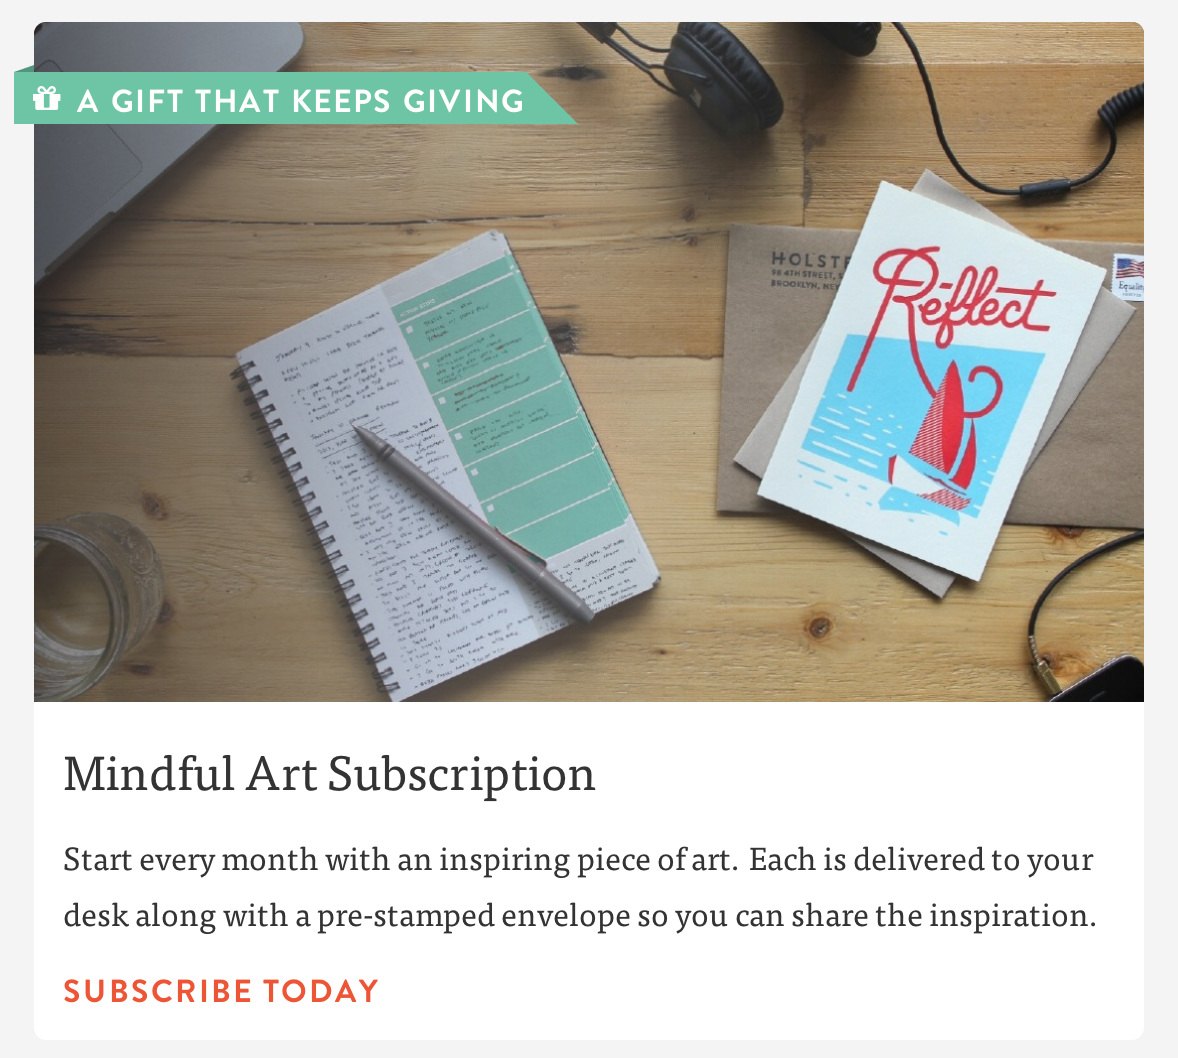 mindful art subscription holstee